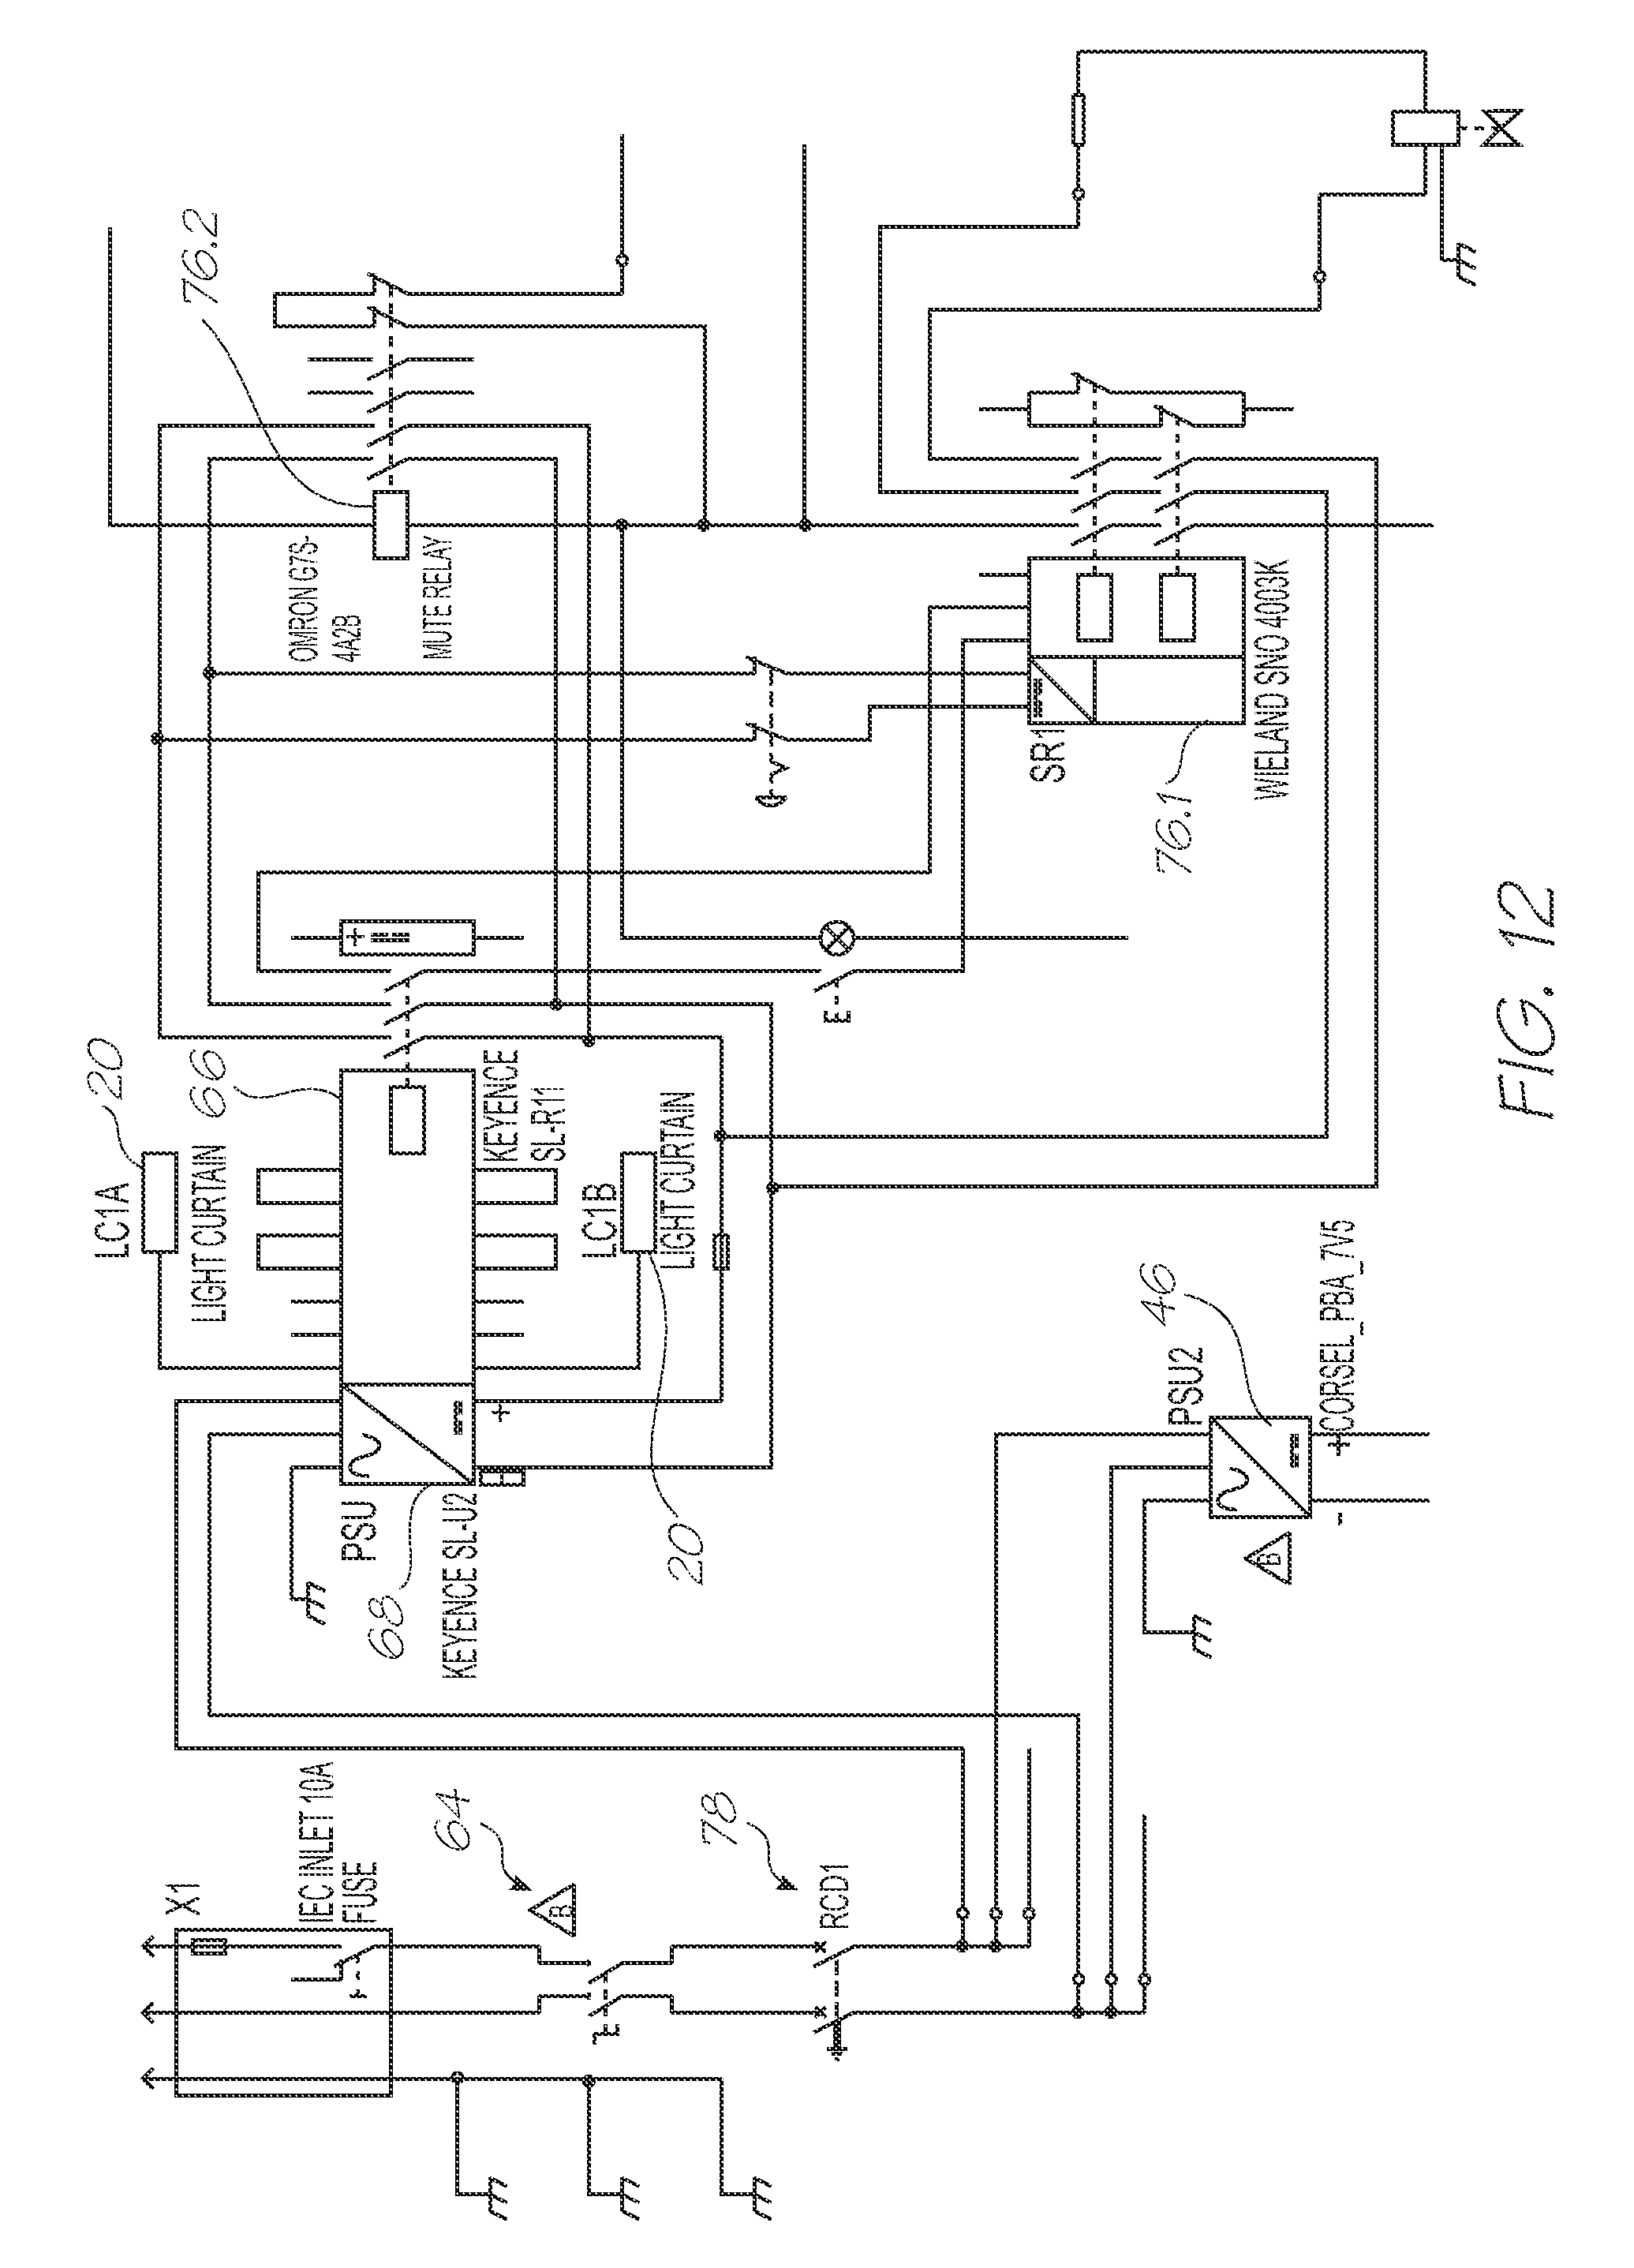 patent us7863890 apparatus for testing integrated circuitry Light Curtain Sensor Safety Relay Wiring Diagram keyence light curtain wiring diagram